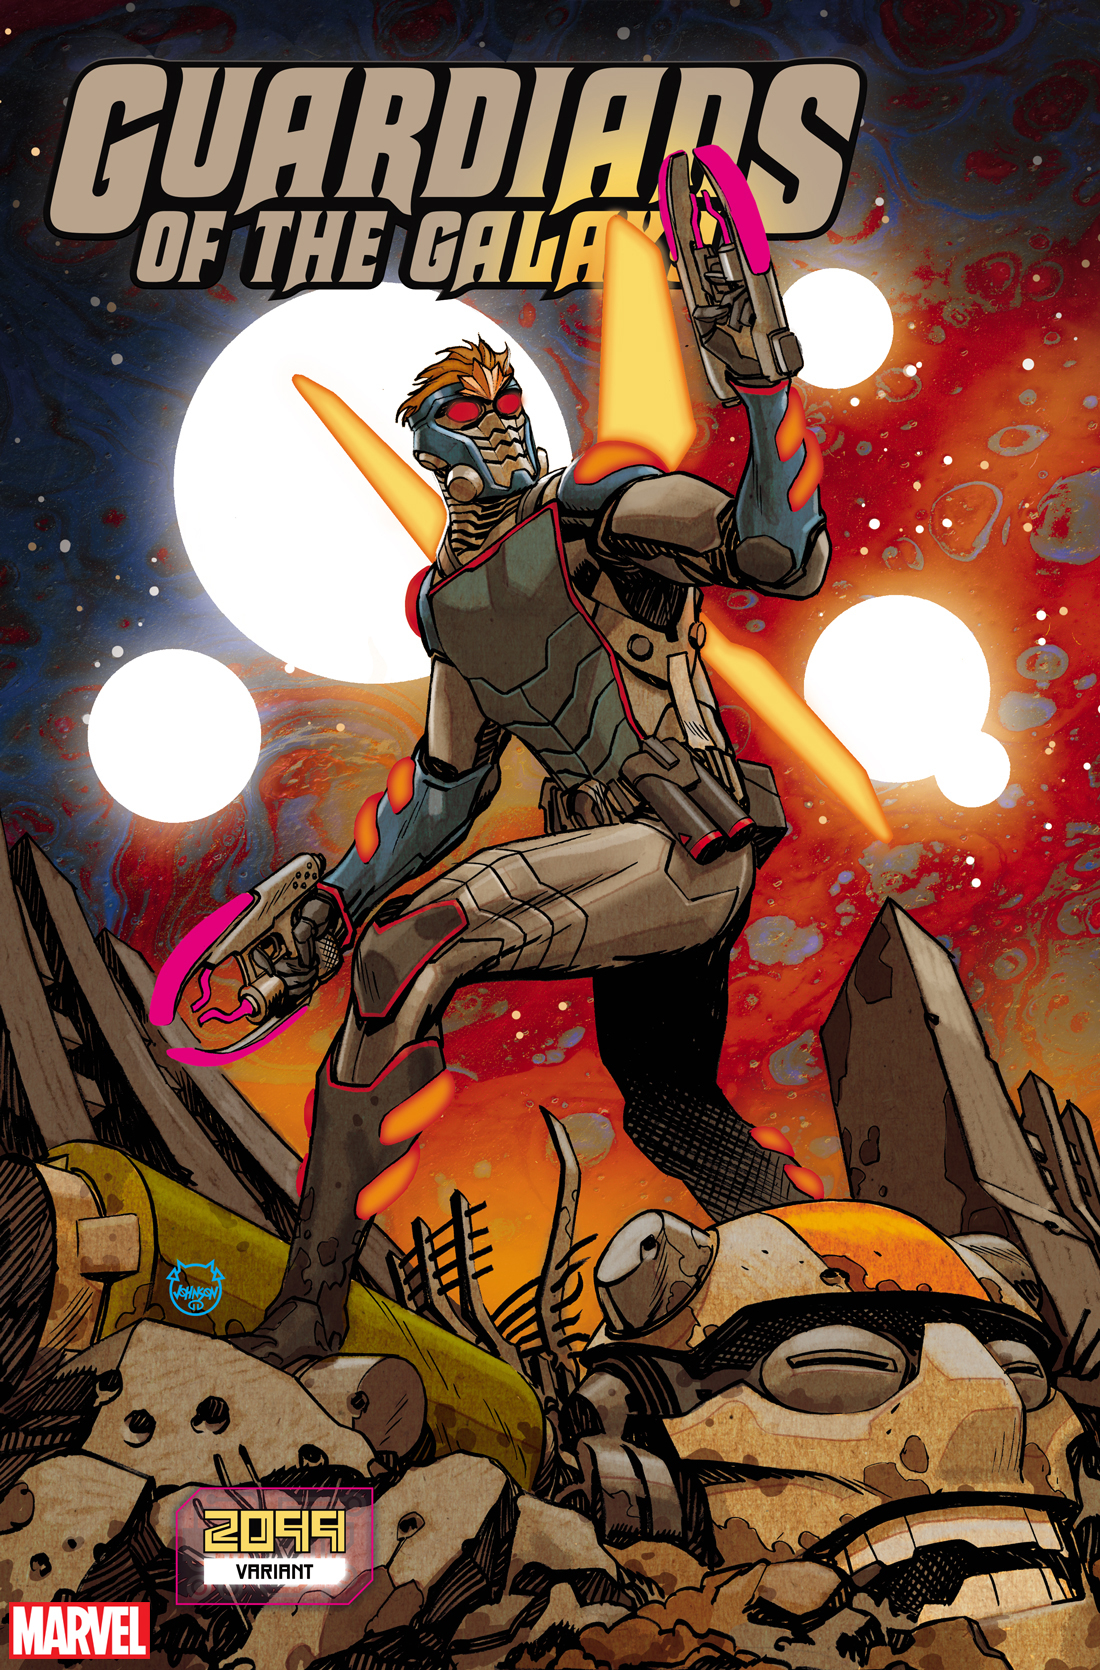 GUARDIANS OF THE GALAXY #11 JOHNSON 2099 VAR